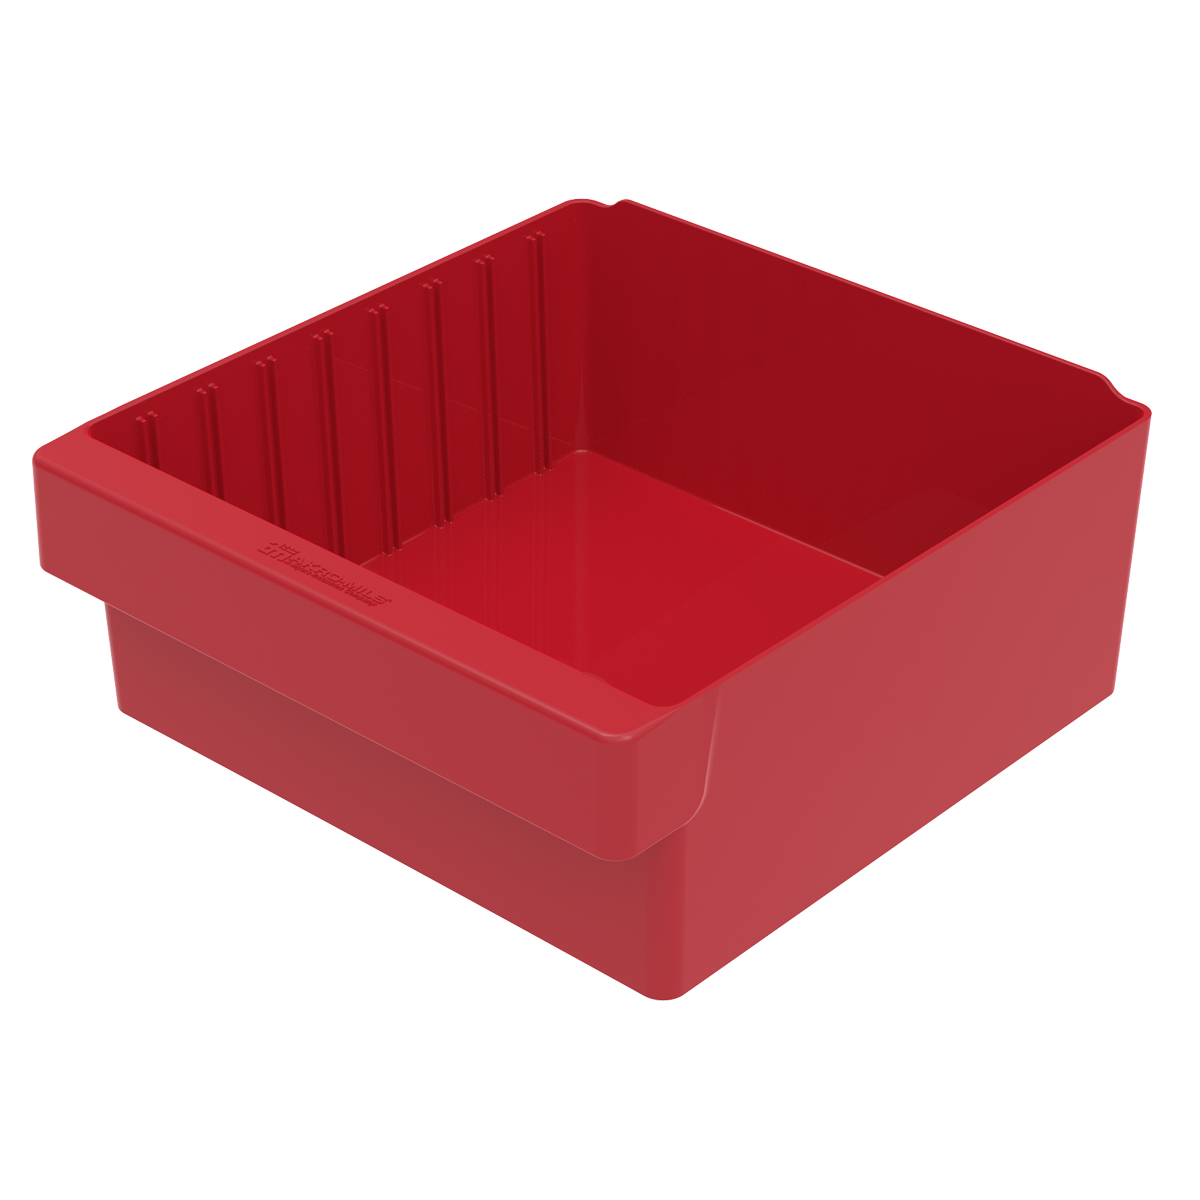 AkroDrawer 11-5/8 x 11-1/8 x 4-5/8, Red (31112RED).  This item sold in carton quantities of 4.